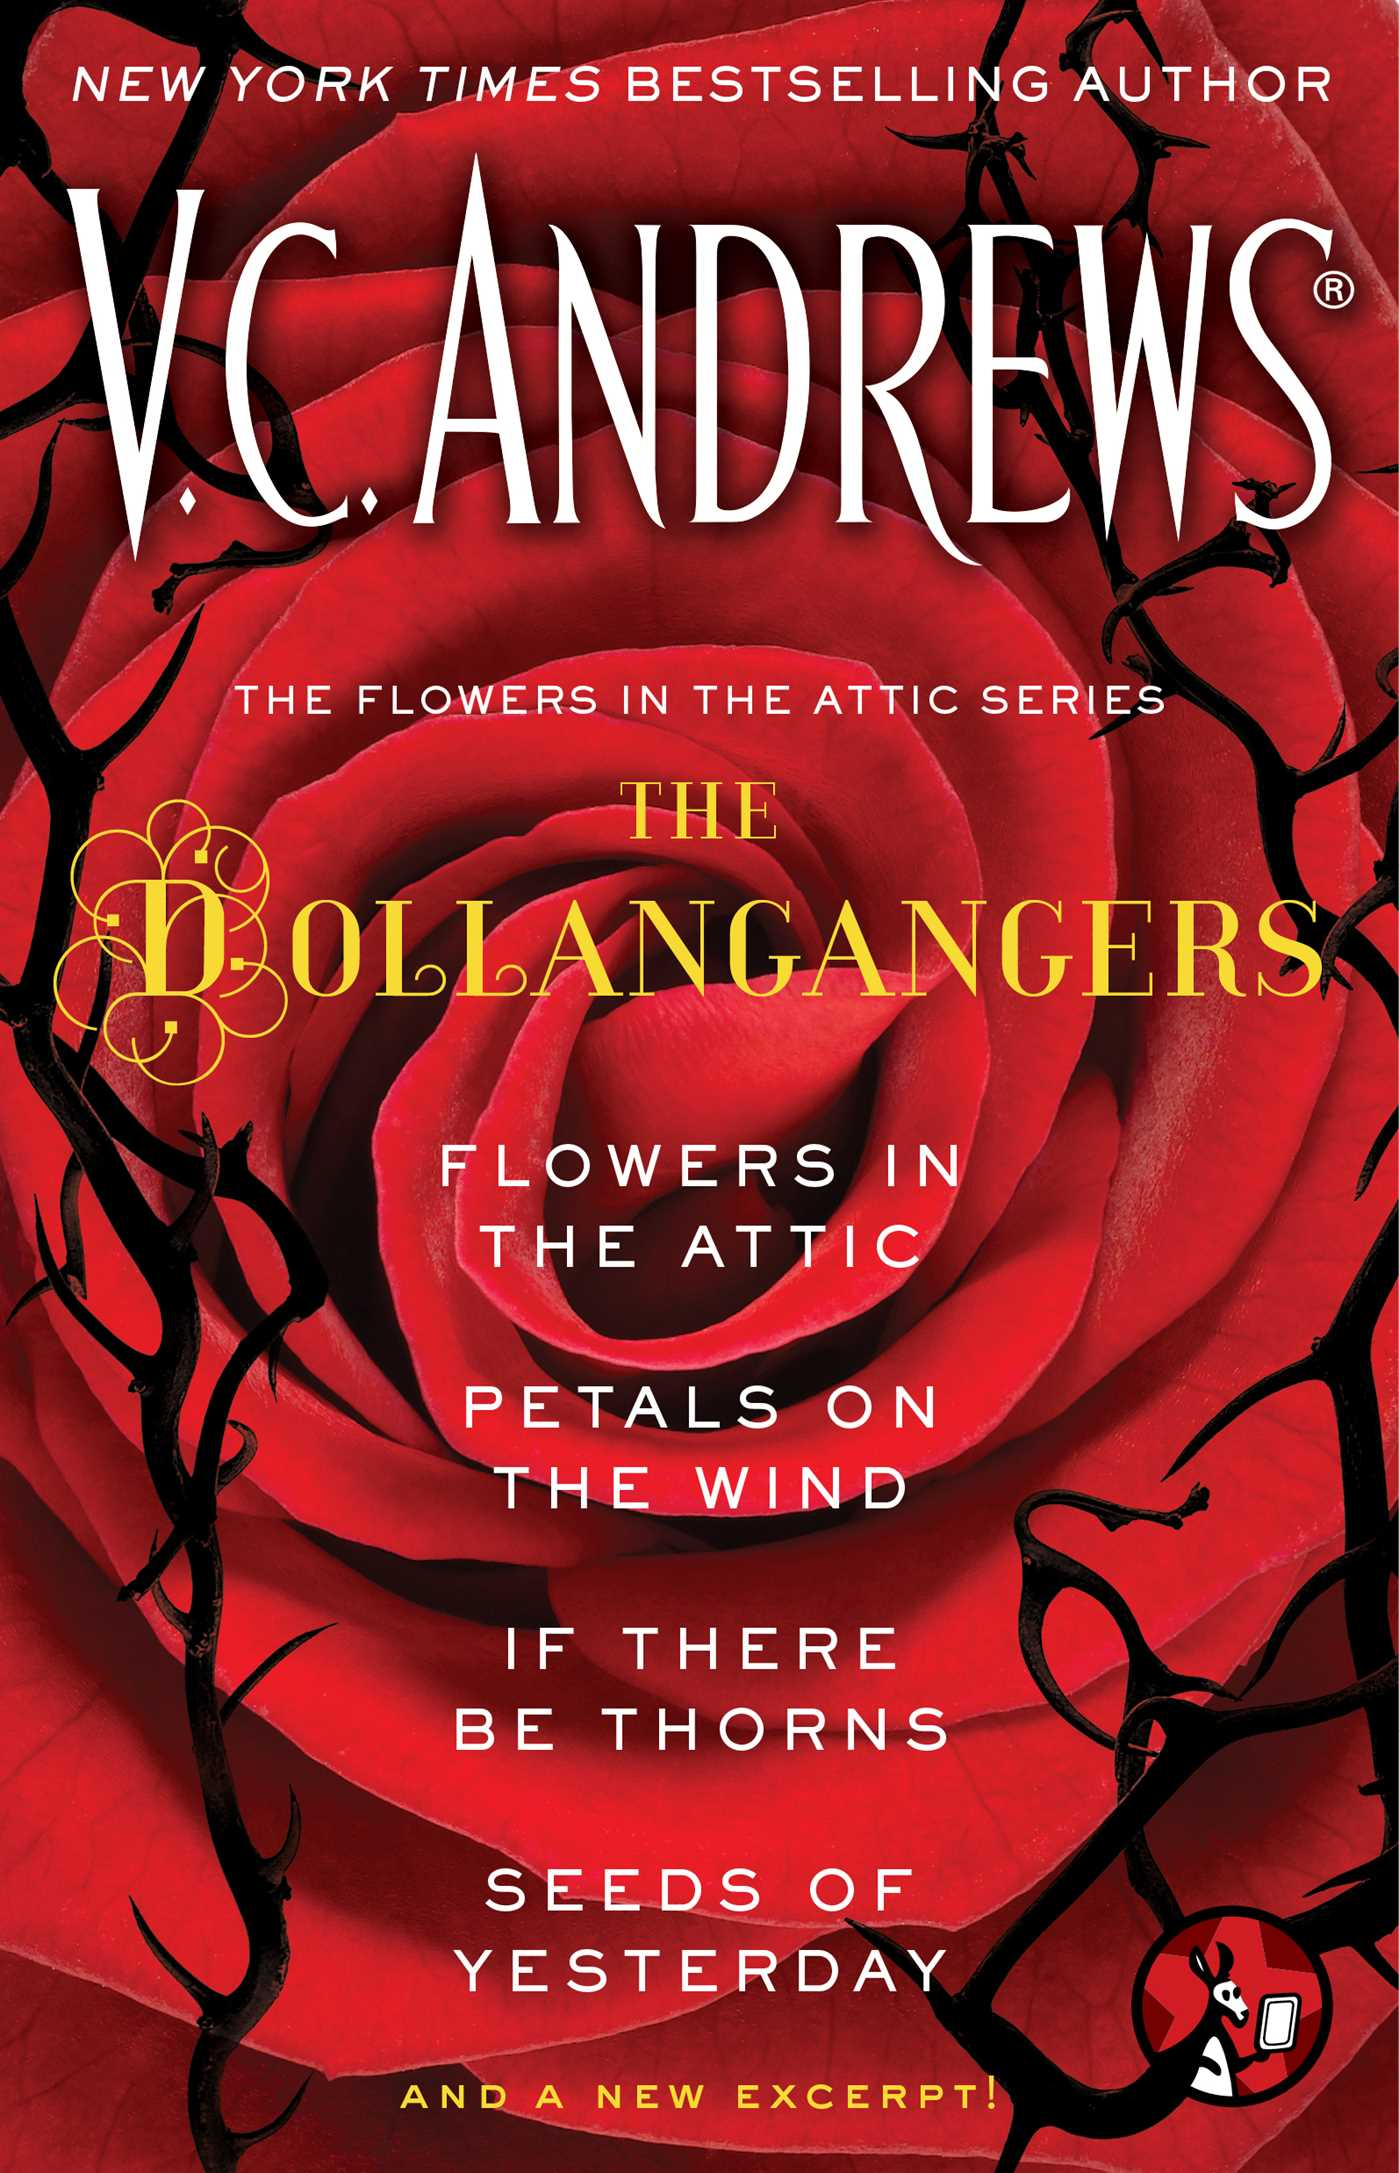 The flowers in the attic series the dollangangers 9781476704173 hr